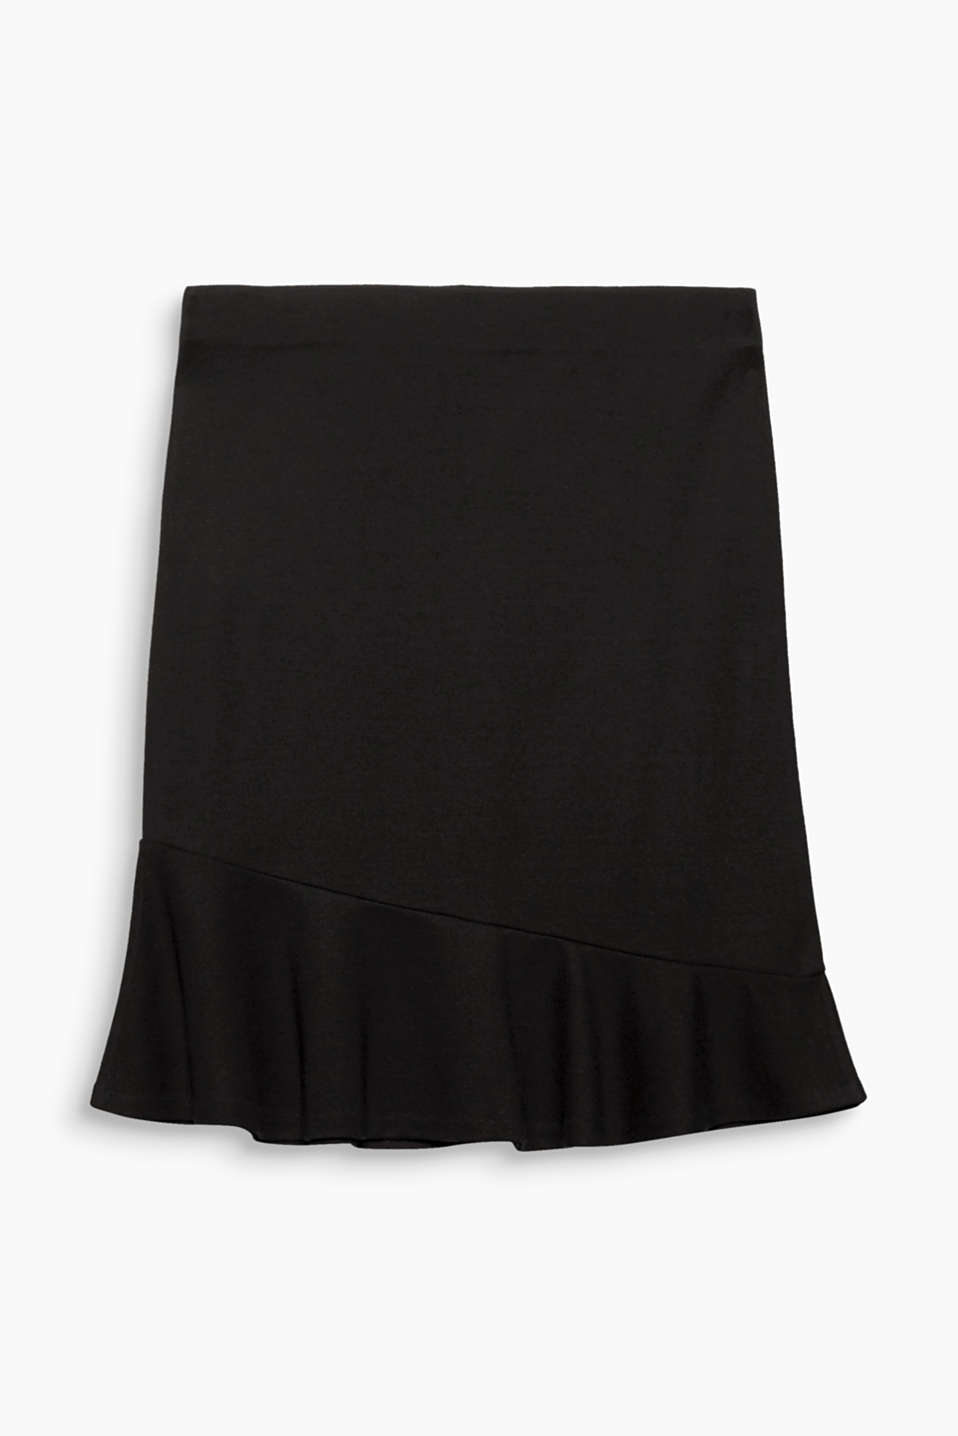 This simple stretch jersey skirt with an asymmetric flounce hem creates a feminine look in a heartbeat!